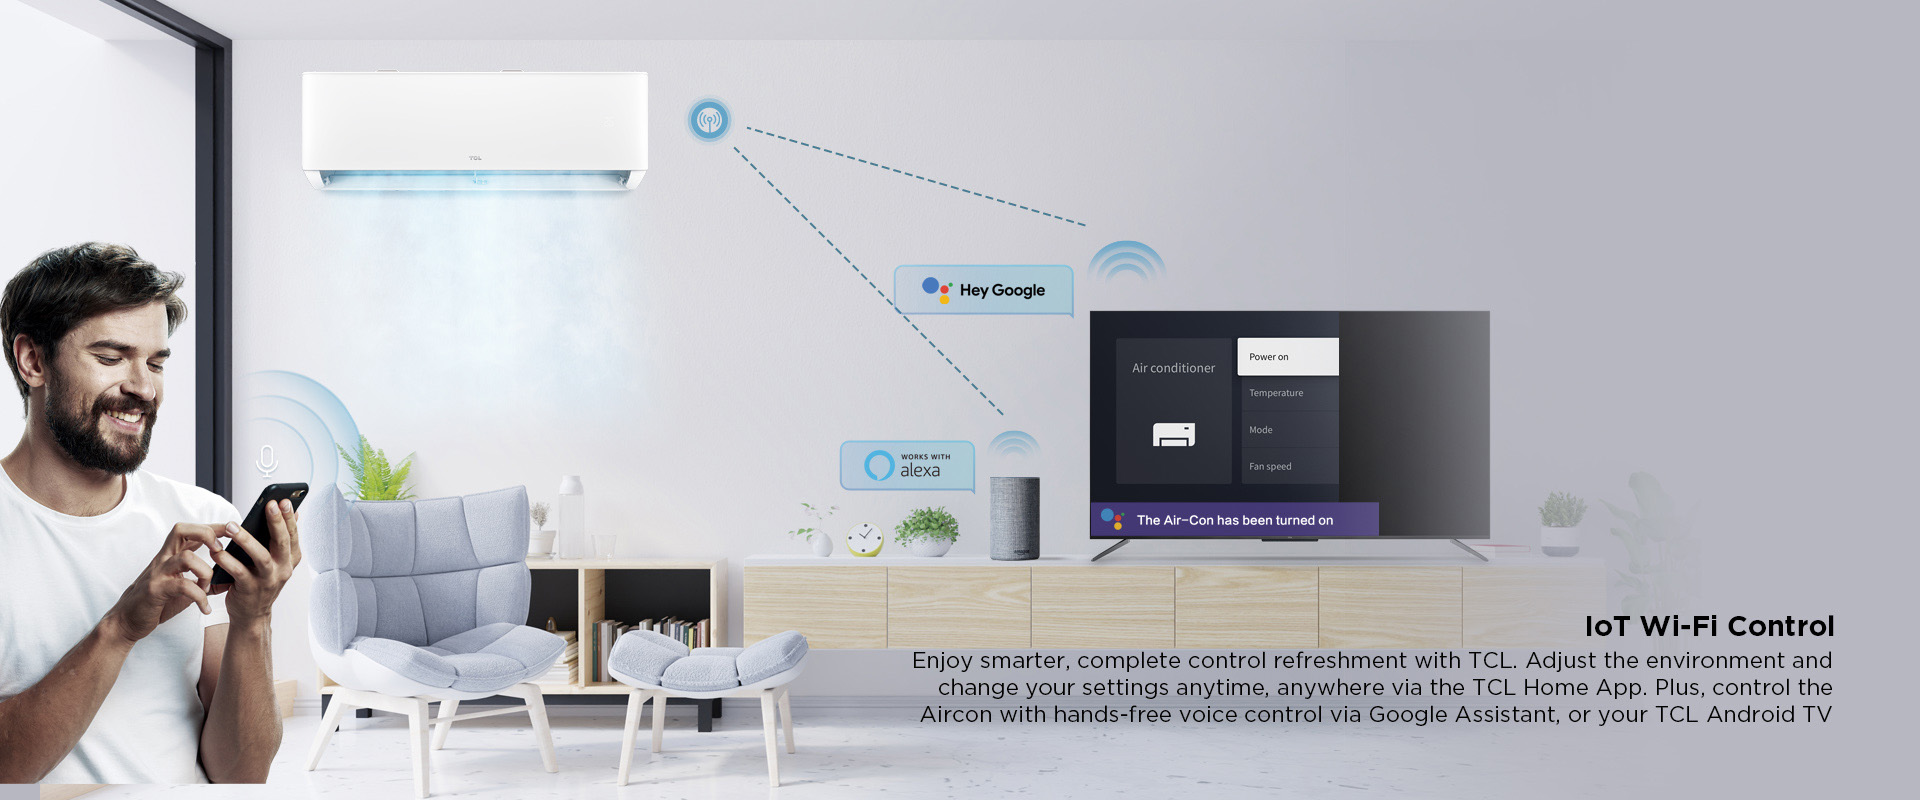 IoT Wi-Fi Control - Enjoy smarter, complete control refreshment with TCL. Adjust the environment and change your settings anytime, anywhere via the TCL Home App. Plus, control the Aircon with hands-free voice control via Google Assistant, or your TCL Android TV